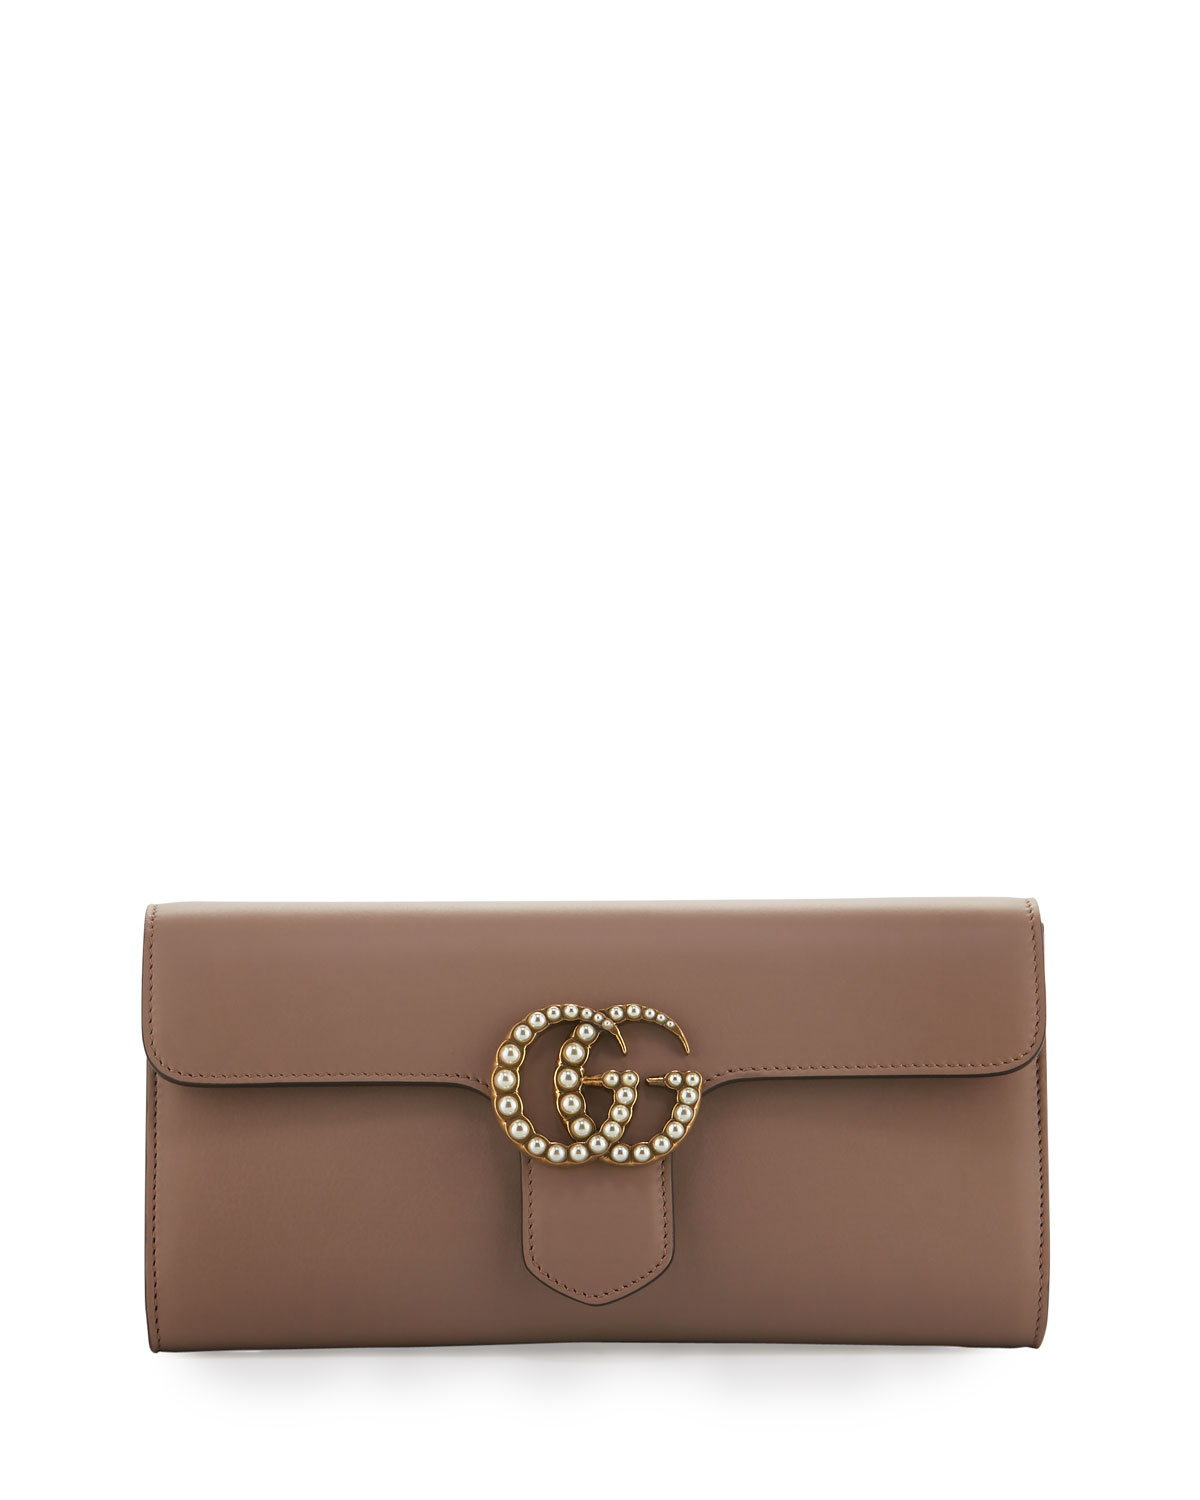 b49346eb8d8 Gucci GG Marmont Pearly Leather Clutch Bag